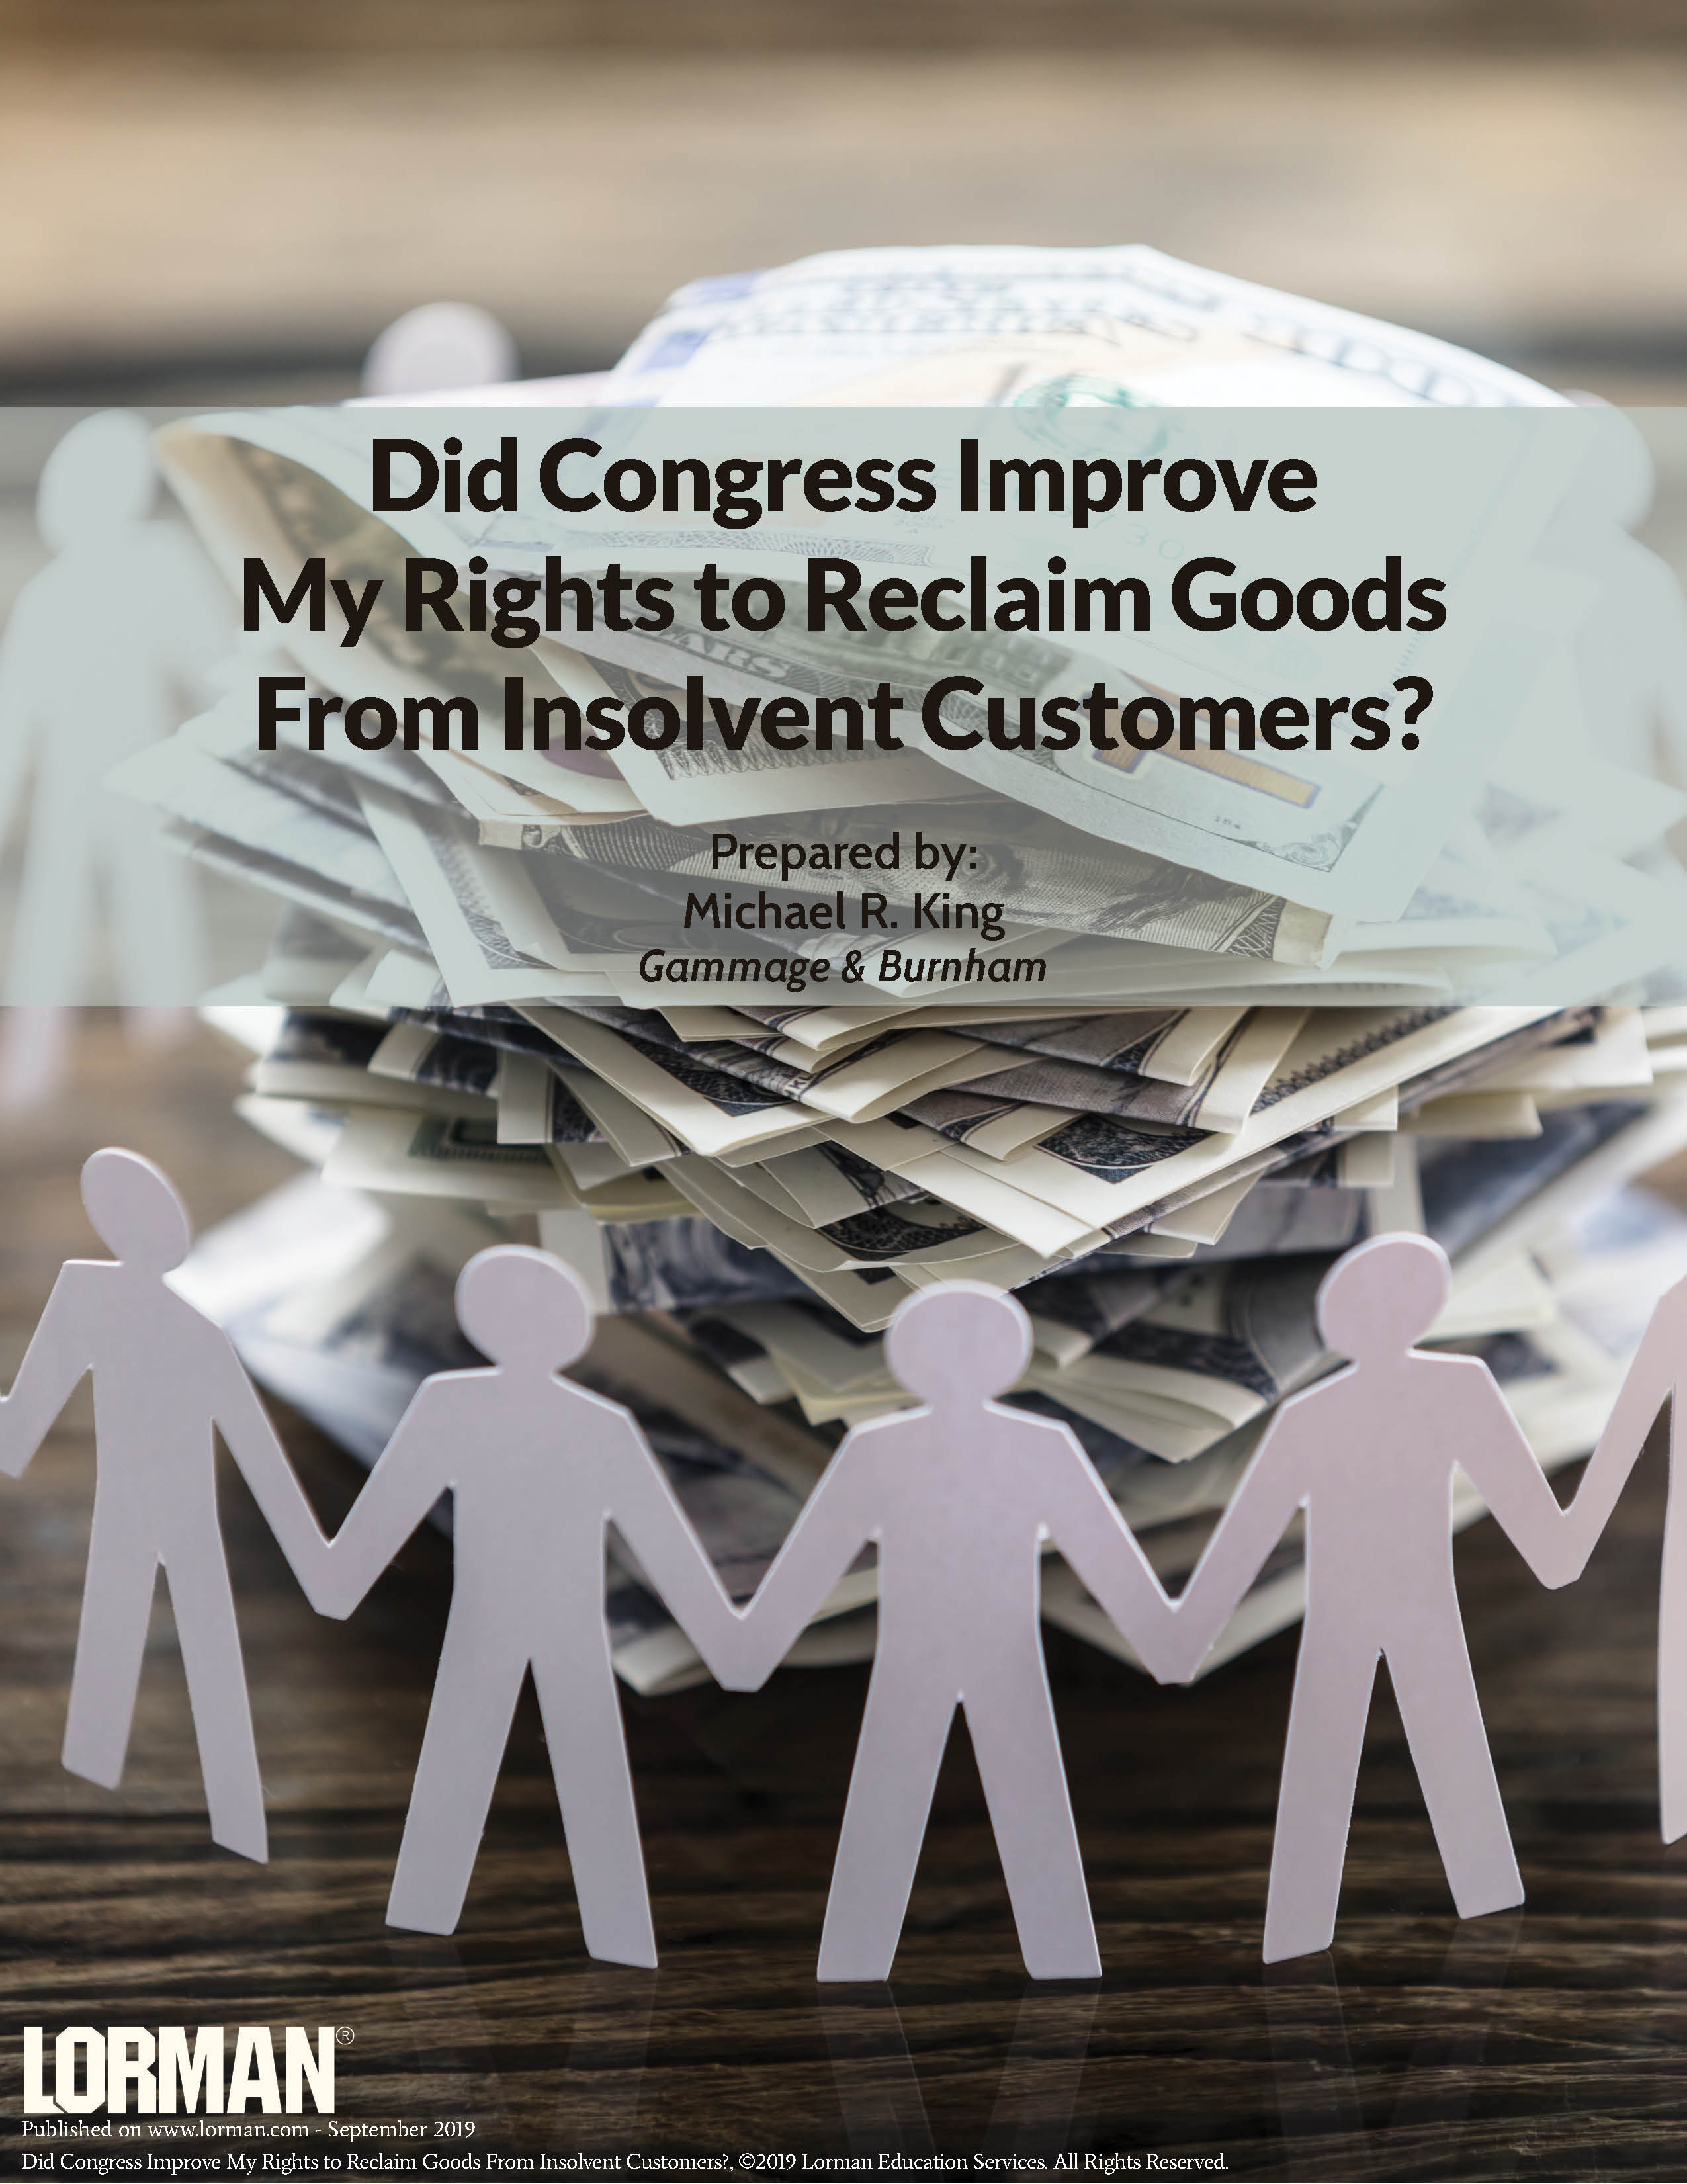 Did Congress Improve My Rights to Reclaim Goods From Insolvent Customers?